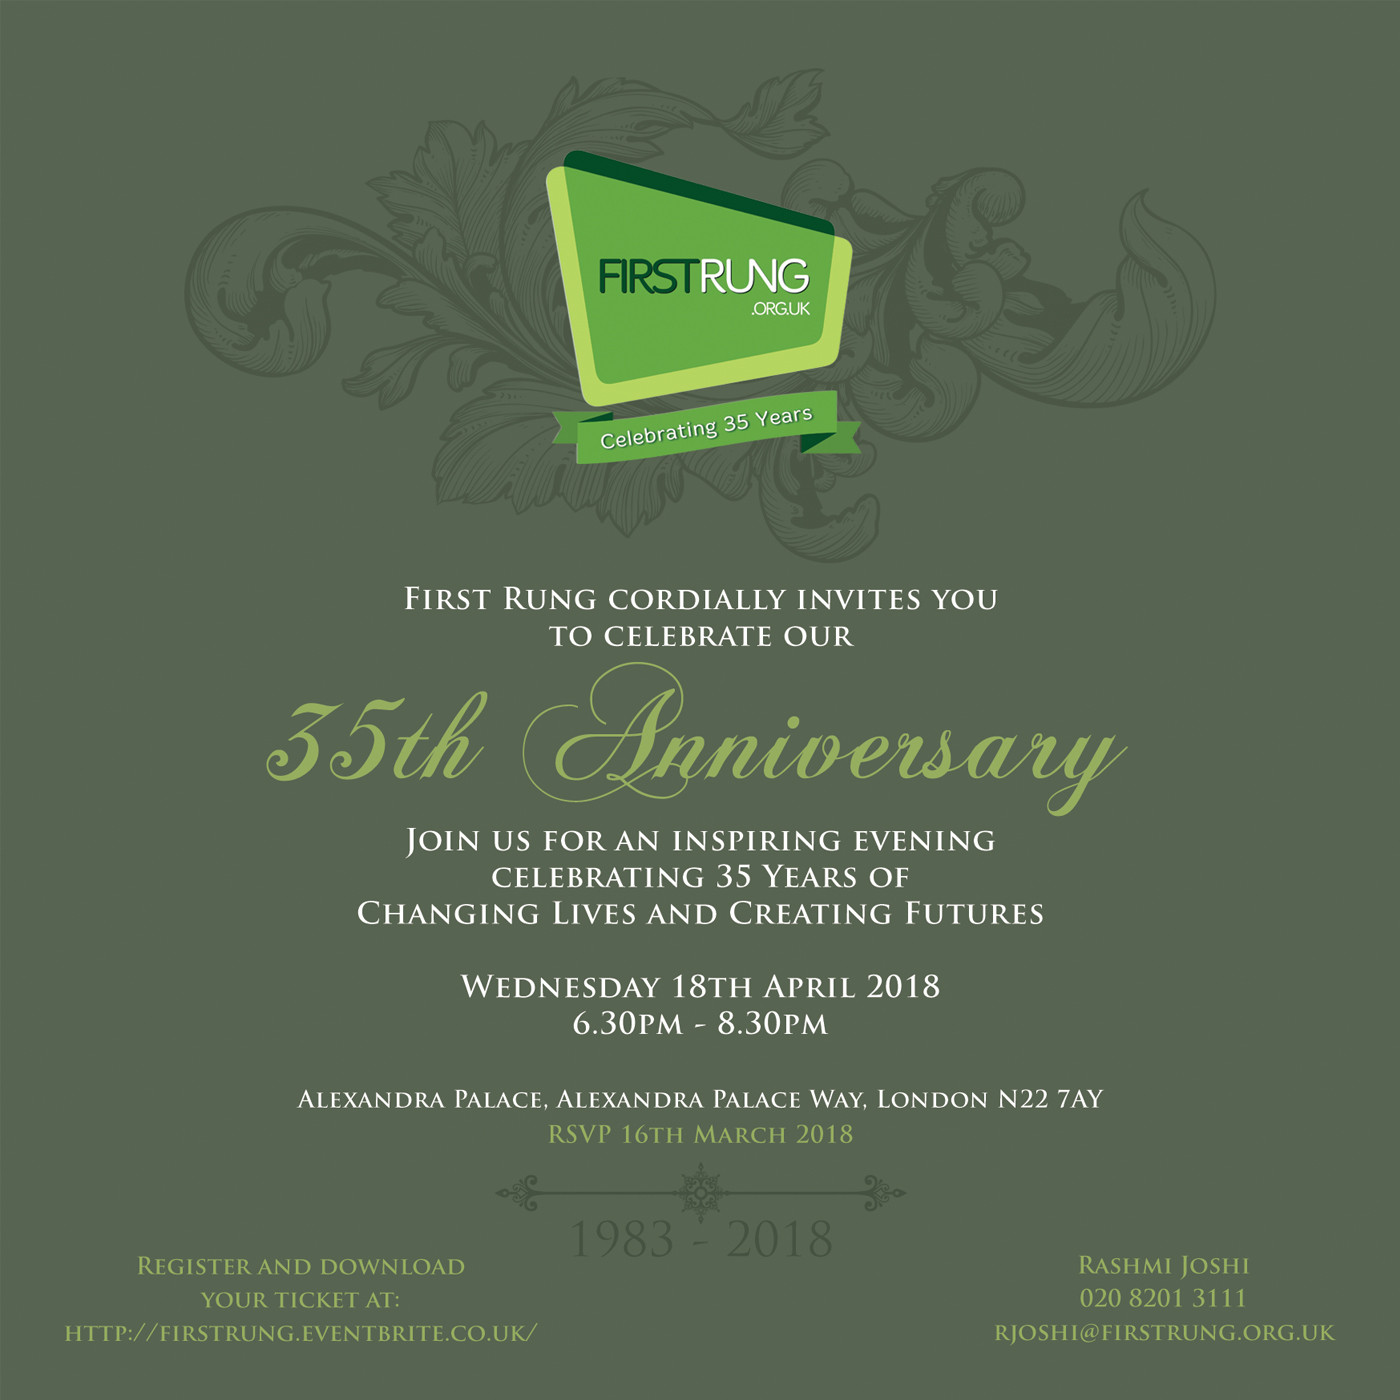 First Rung 35th Anniversay Invitation